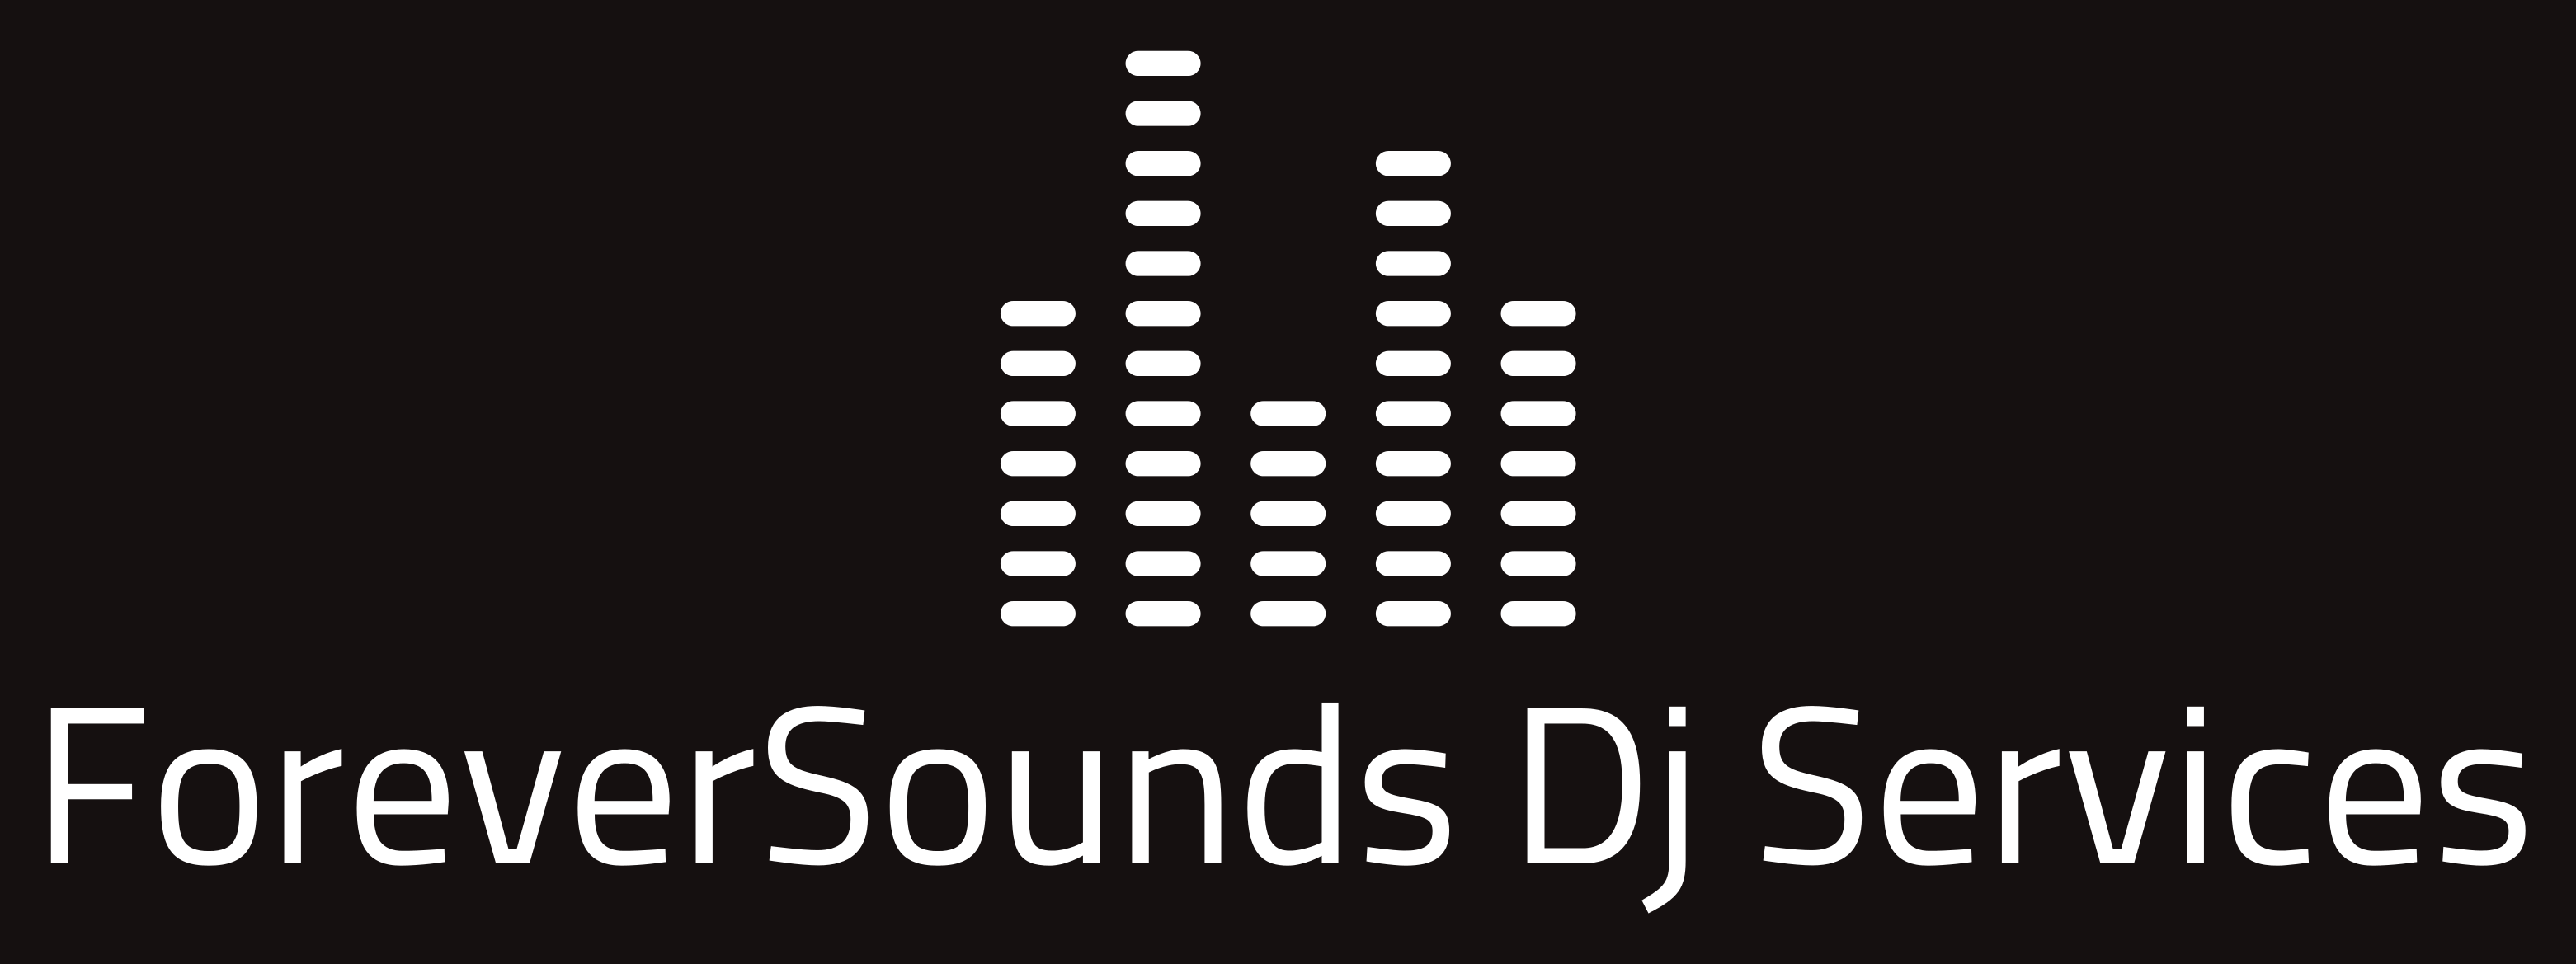 ForeverSounds DJ Services